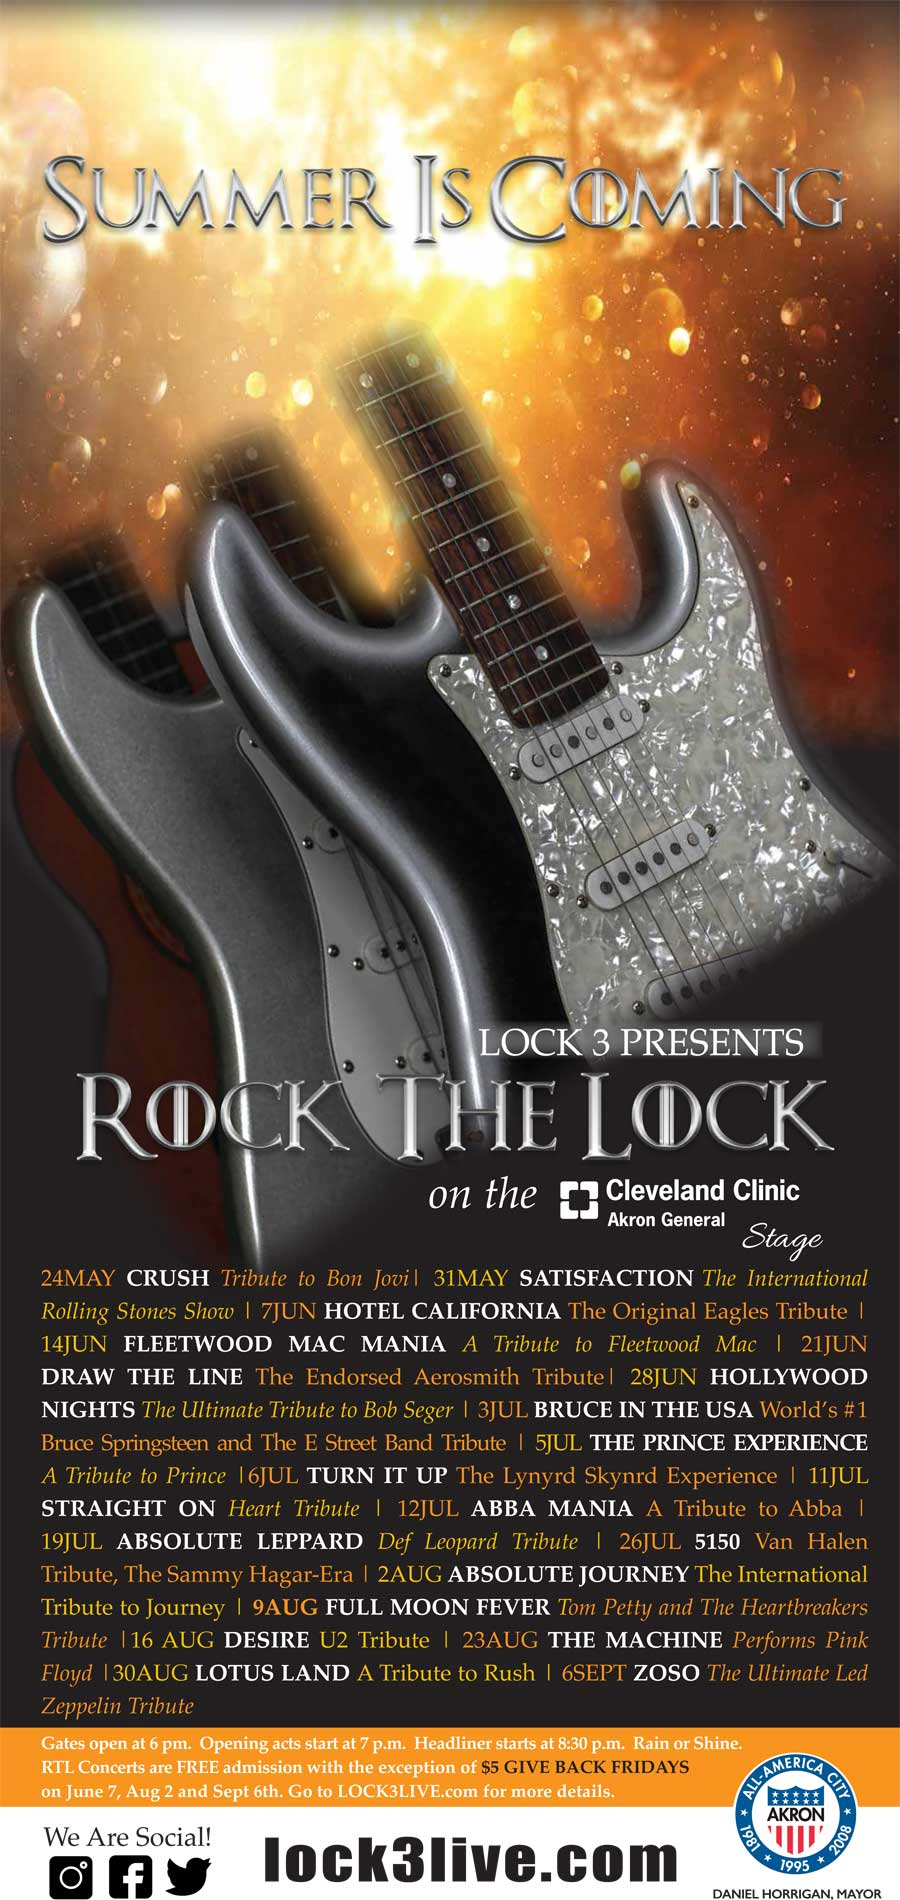 rockthelock shows